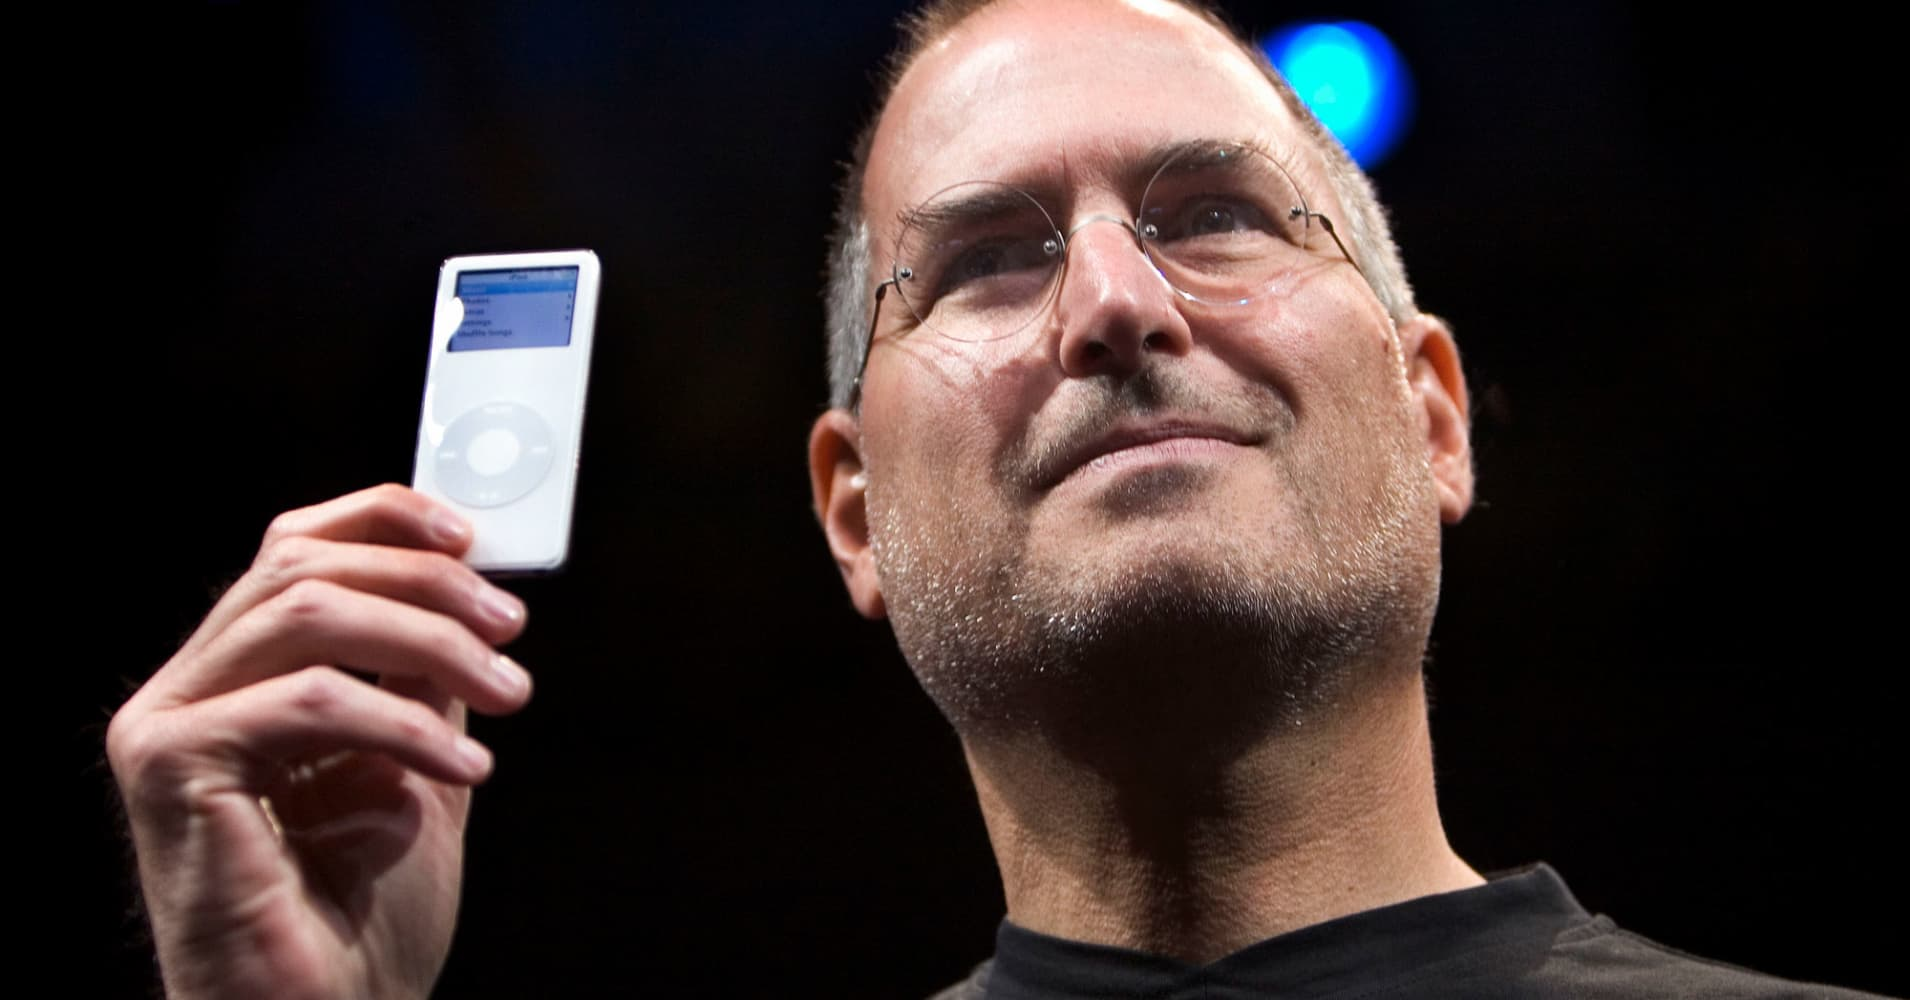 Jobs: Can You Still Buy An IPod Shuffle Or Nano? Apple Says They